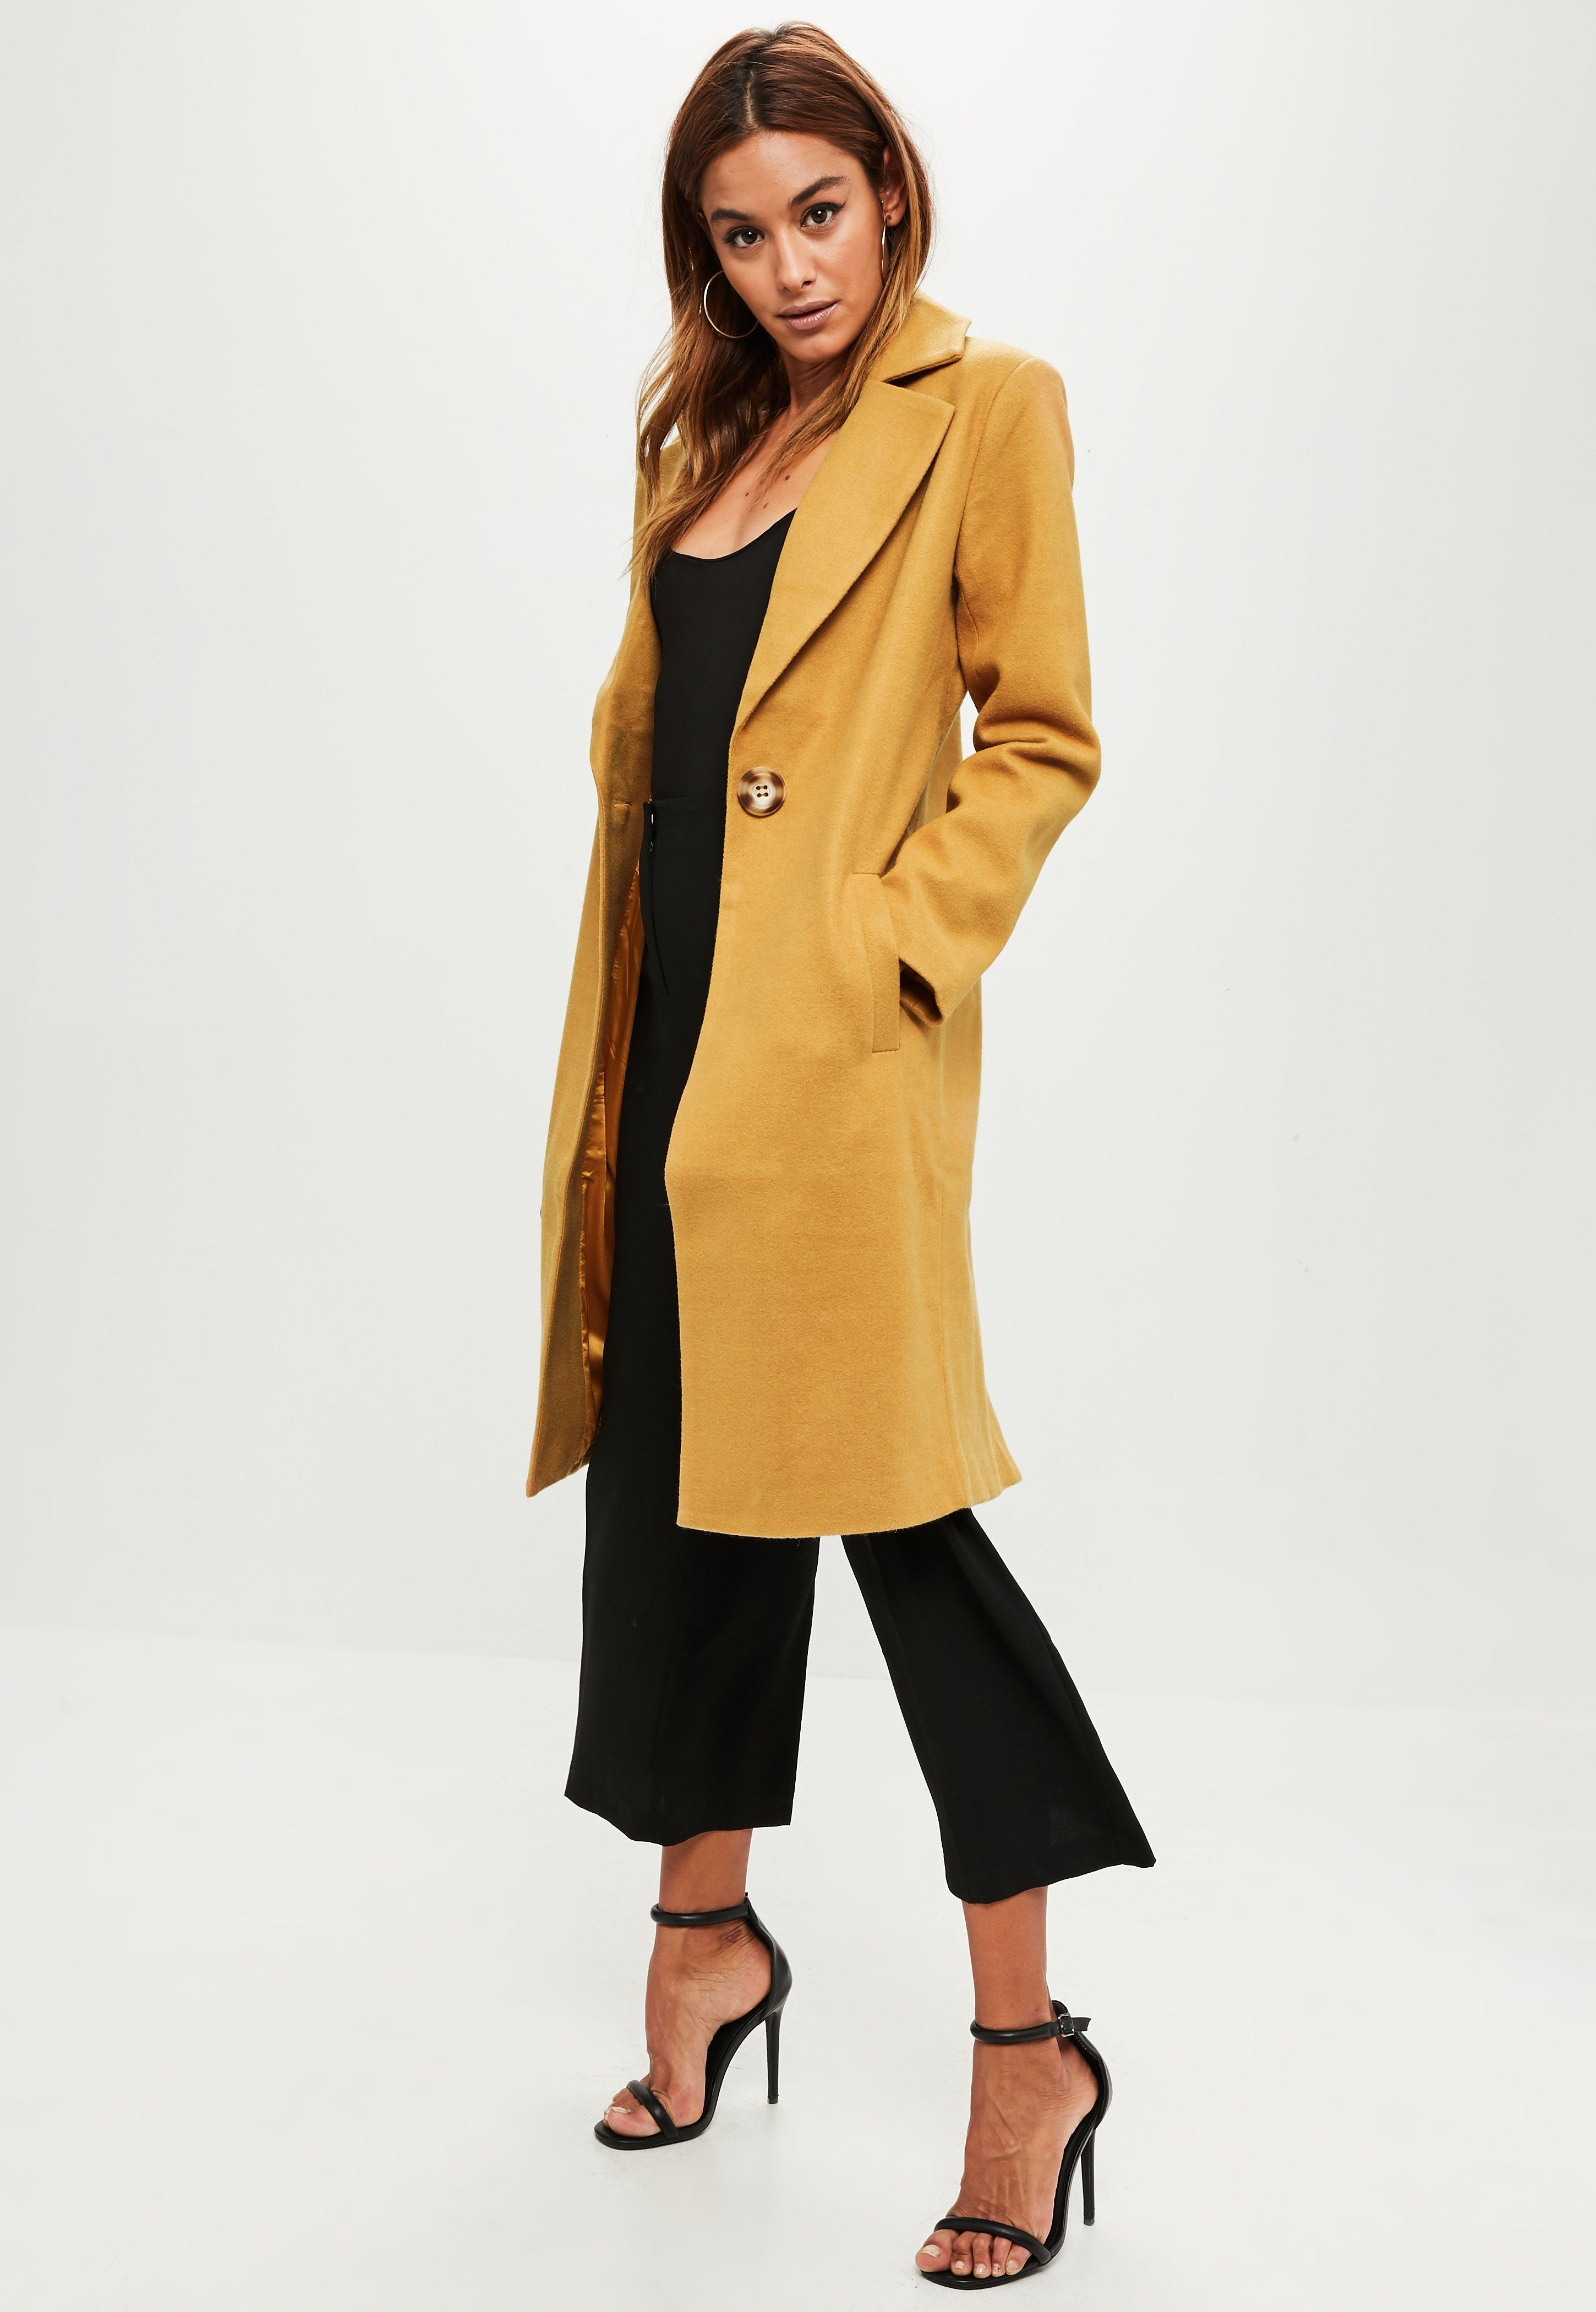 the to drapes for articles coats wool enough go down drape winter warm way are or jackets coat